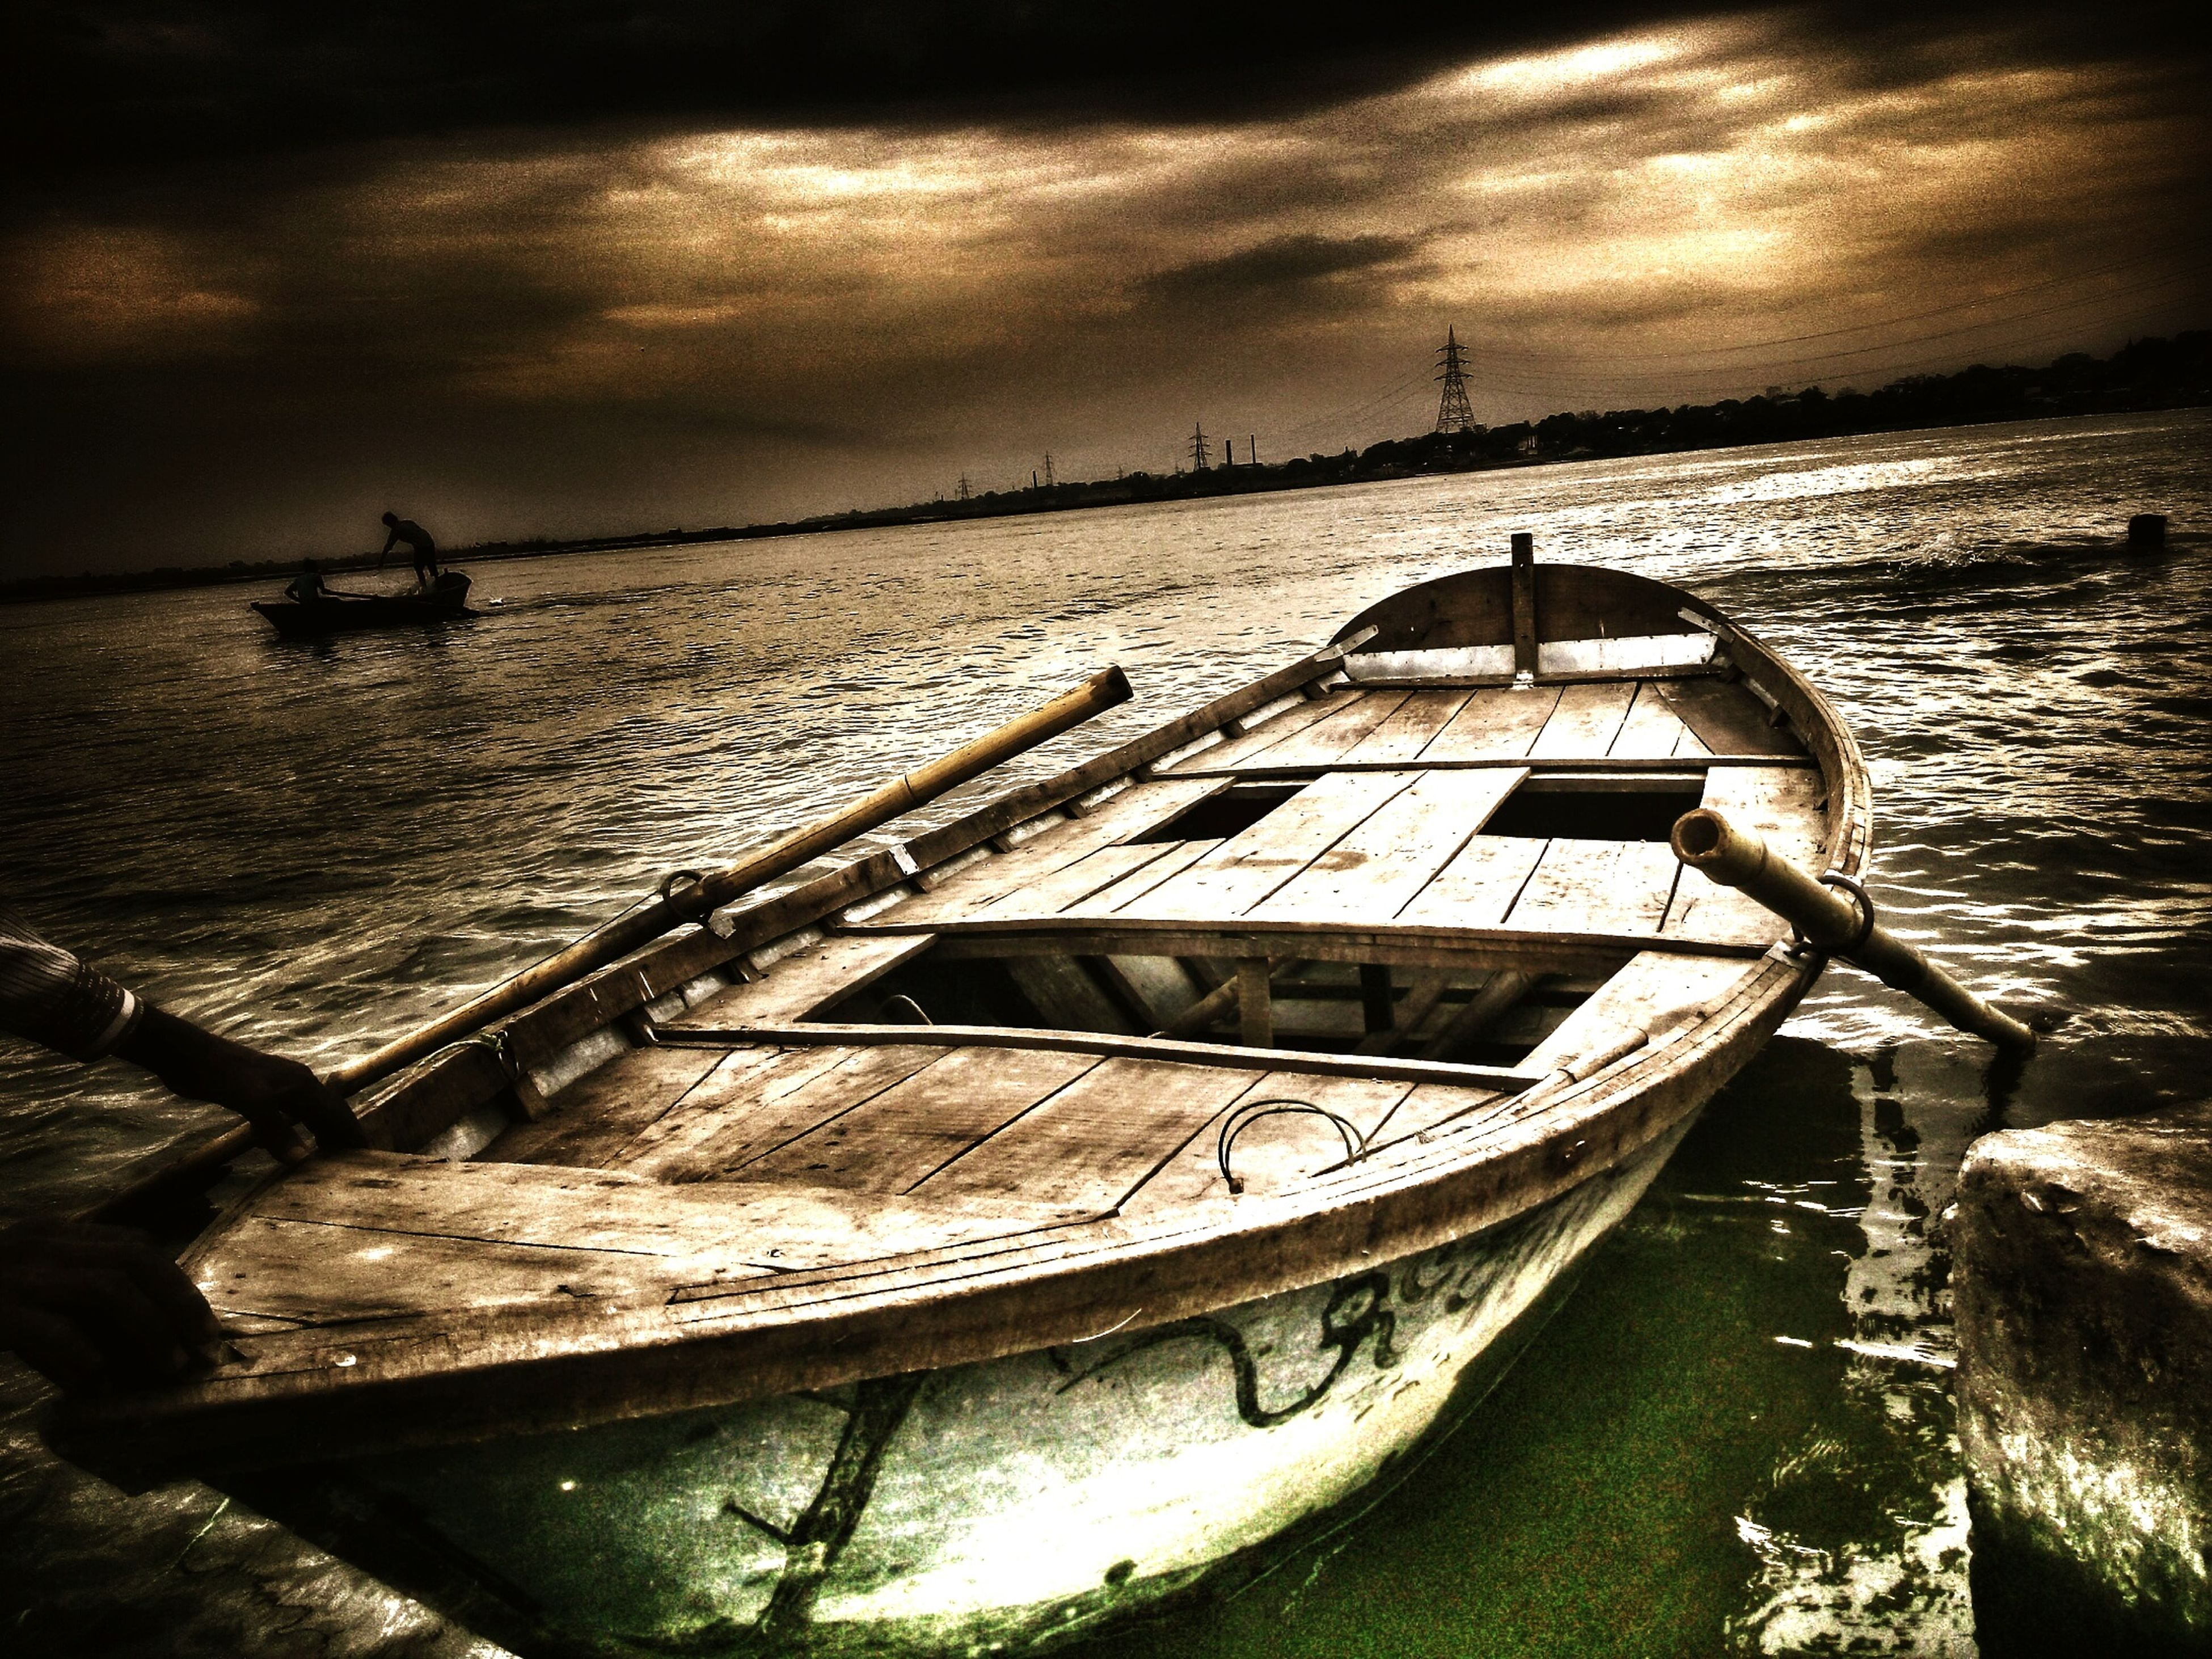 nautical vessel, water, boat, transportation, moored, mode of transport, sea, sky, abandoned, cloud - sky, tranquility, nature, horizon over water, tranquil scene, damaged, shore, no people, outdoors, beauty in nature, day